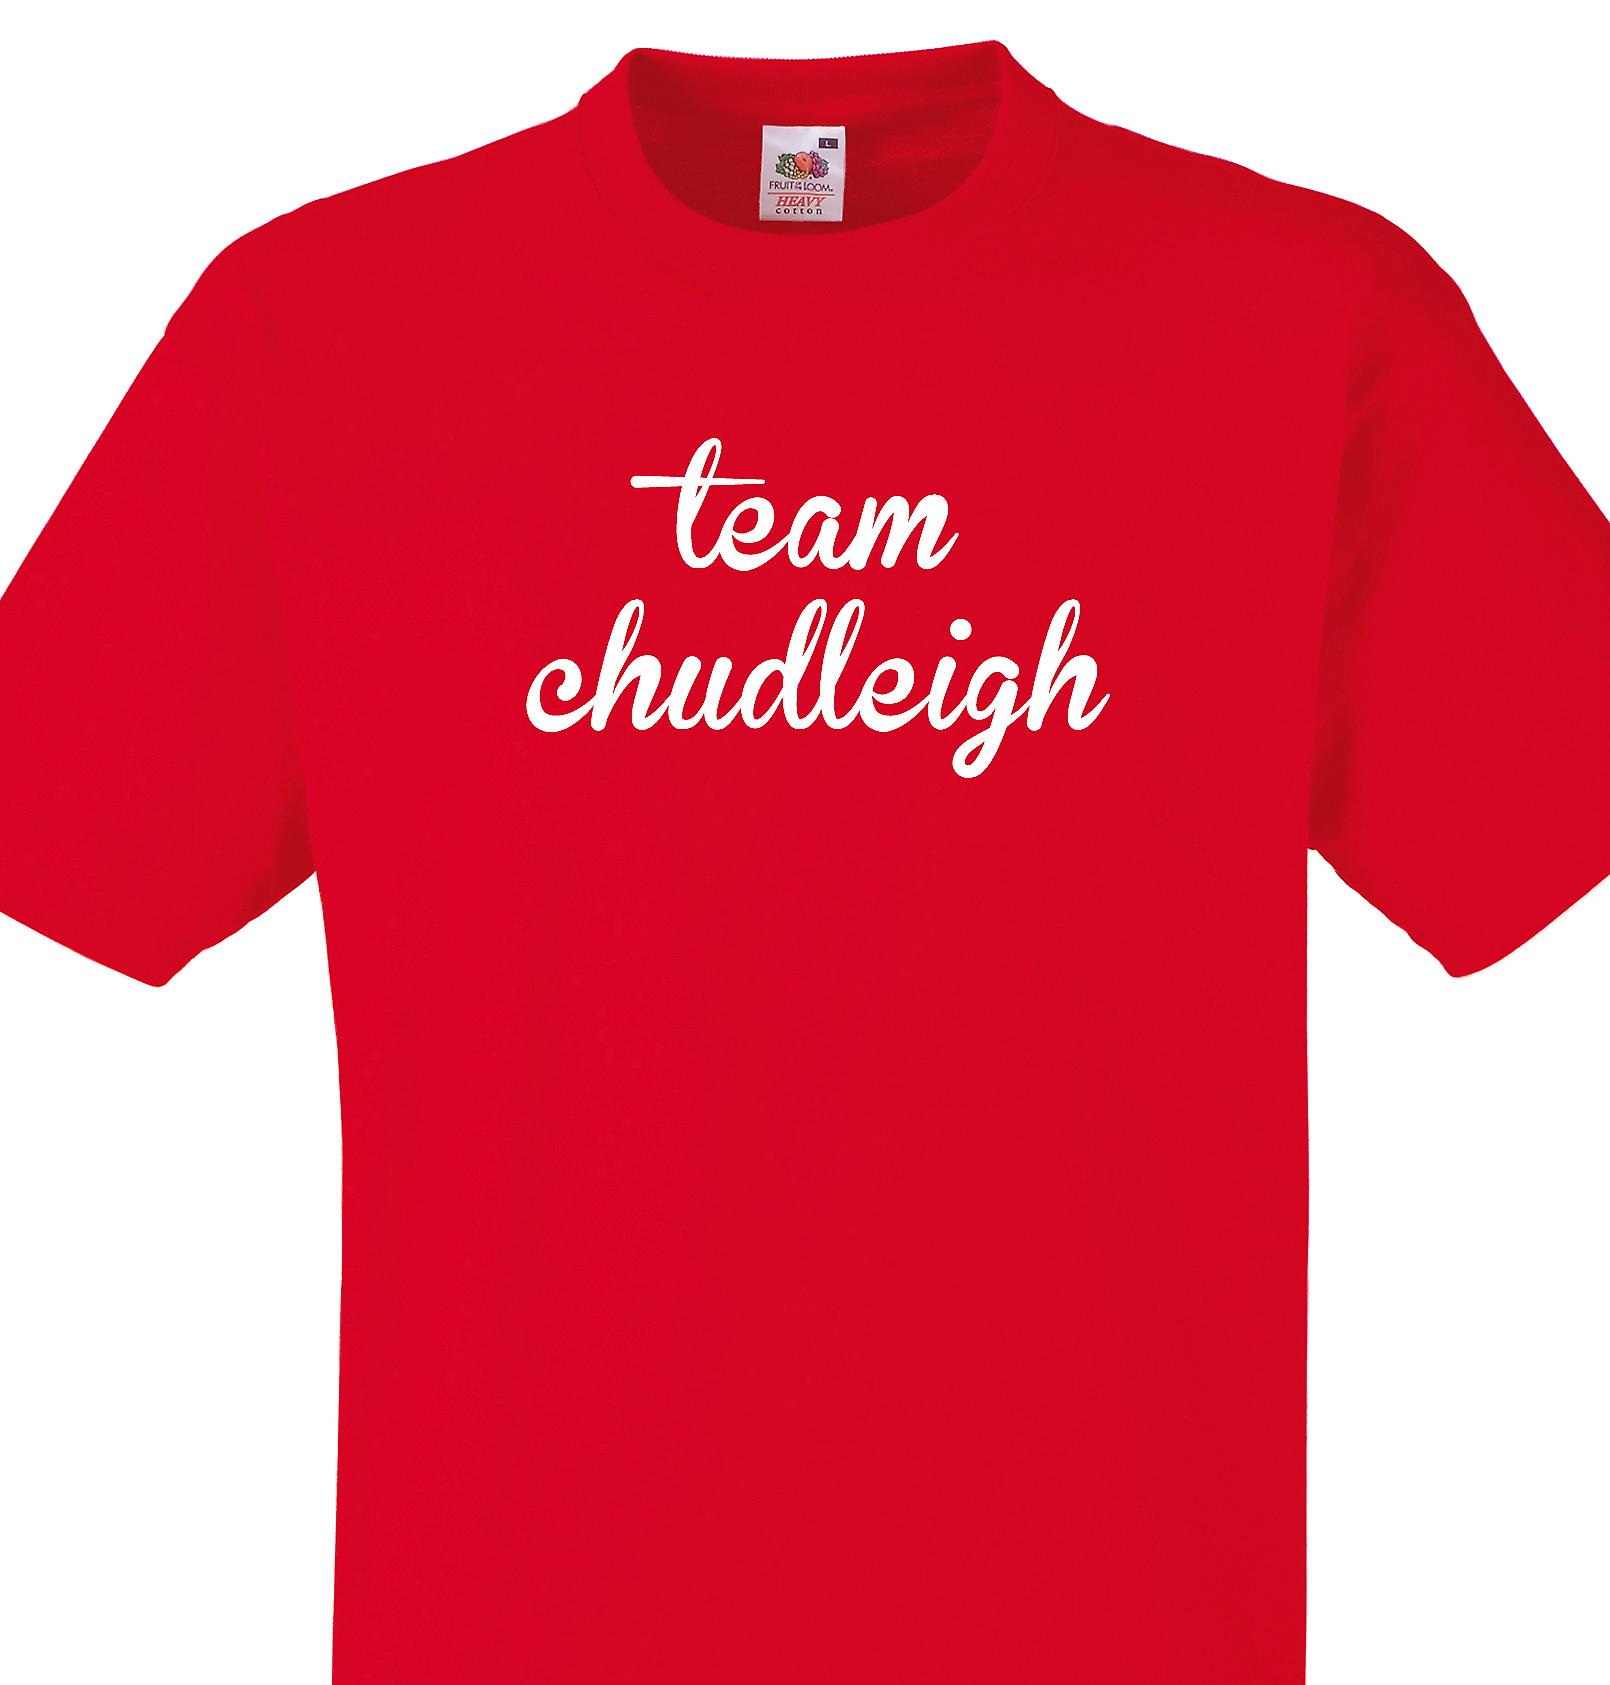 Team Chudleigh Red T shirt